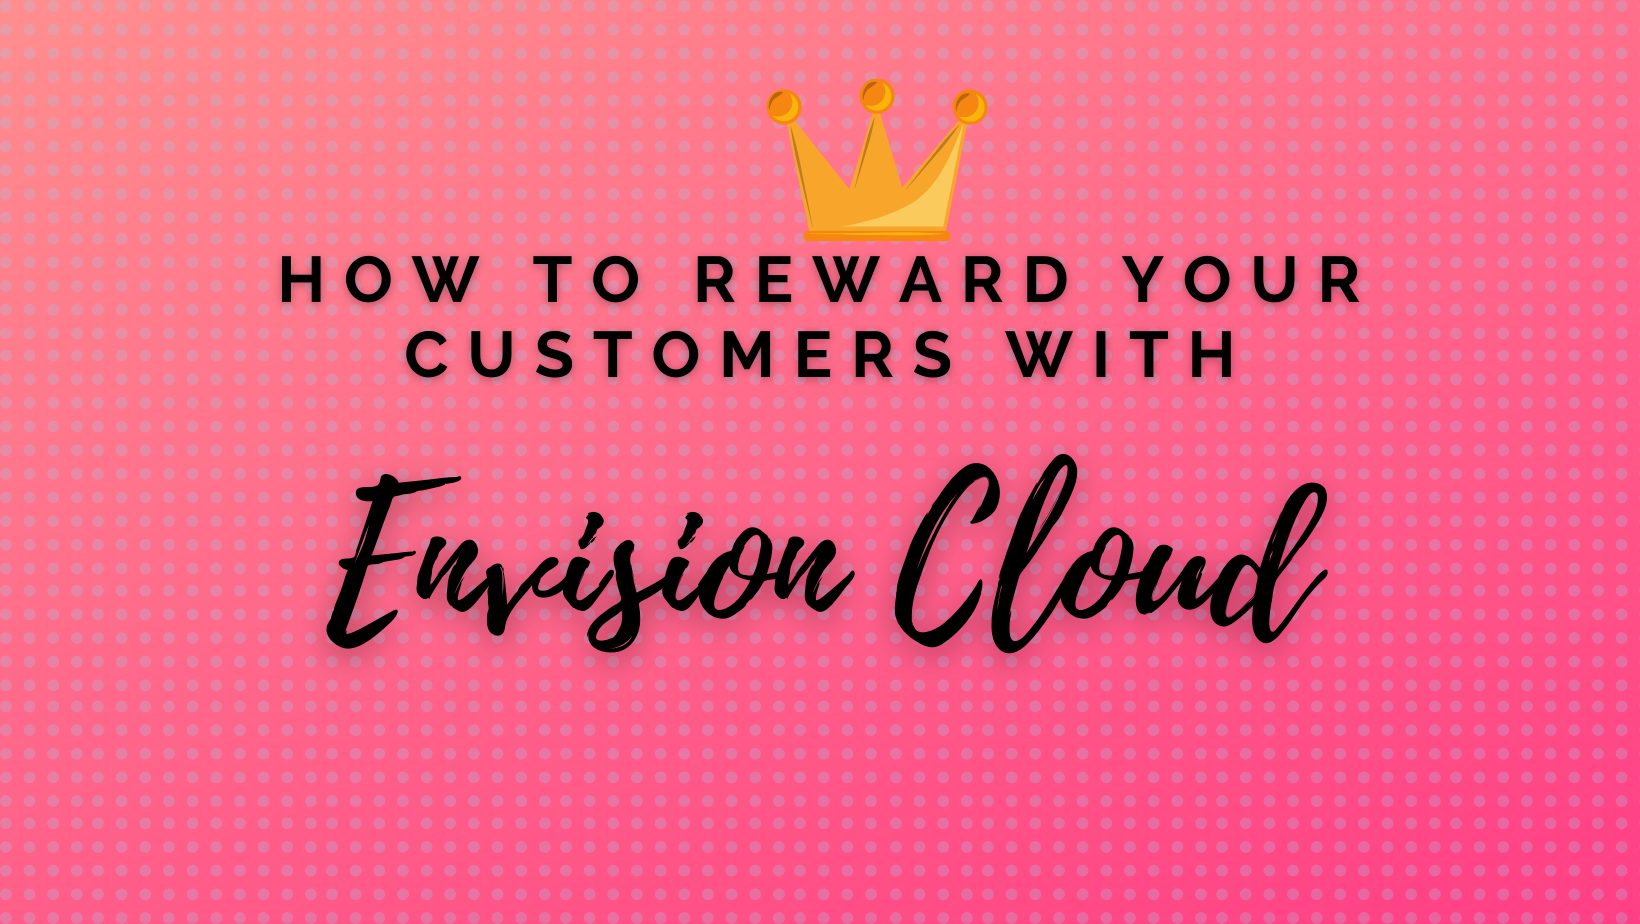 how to reward your customers graphic with crown